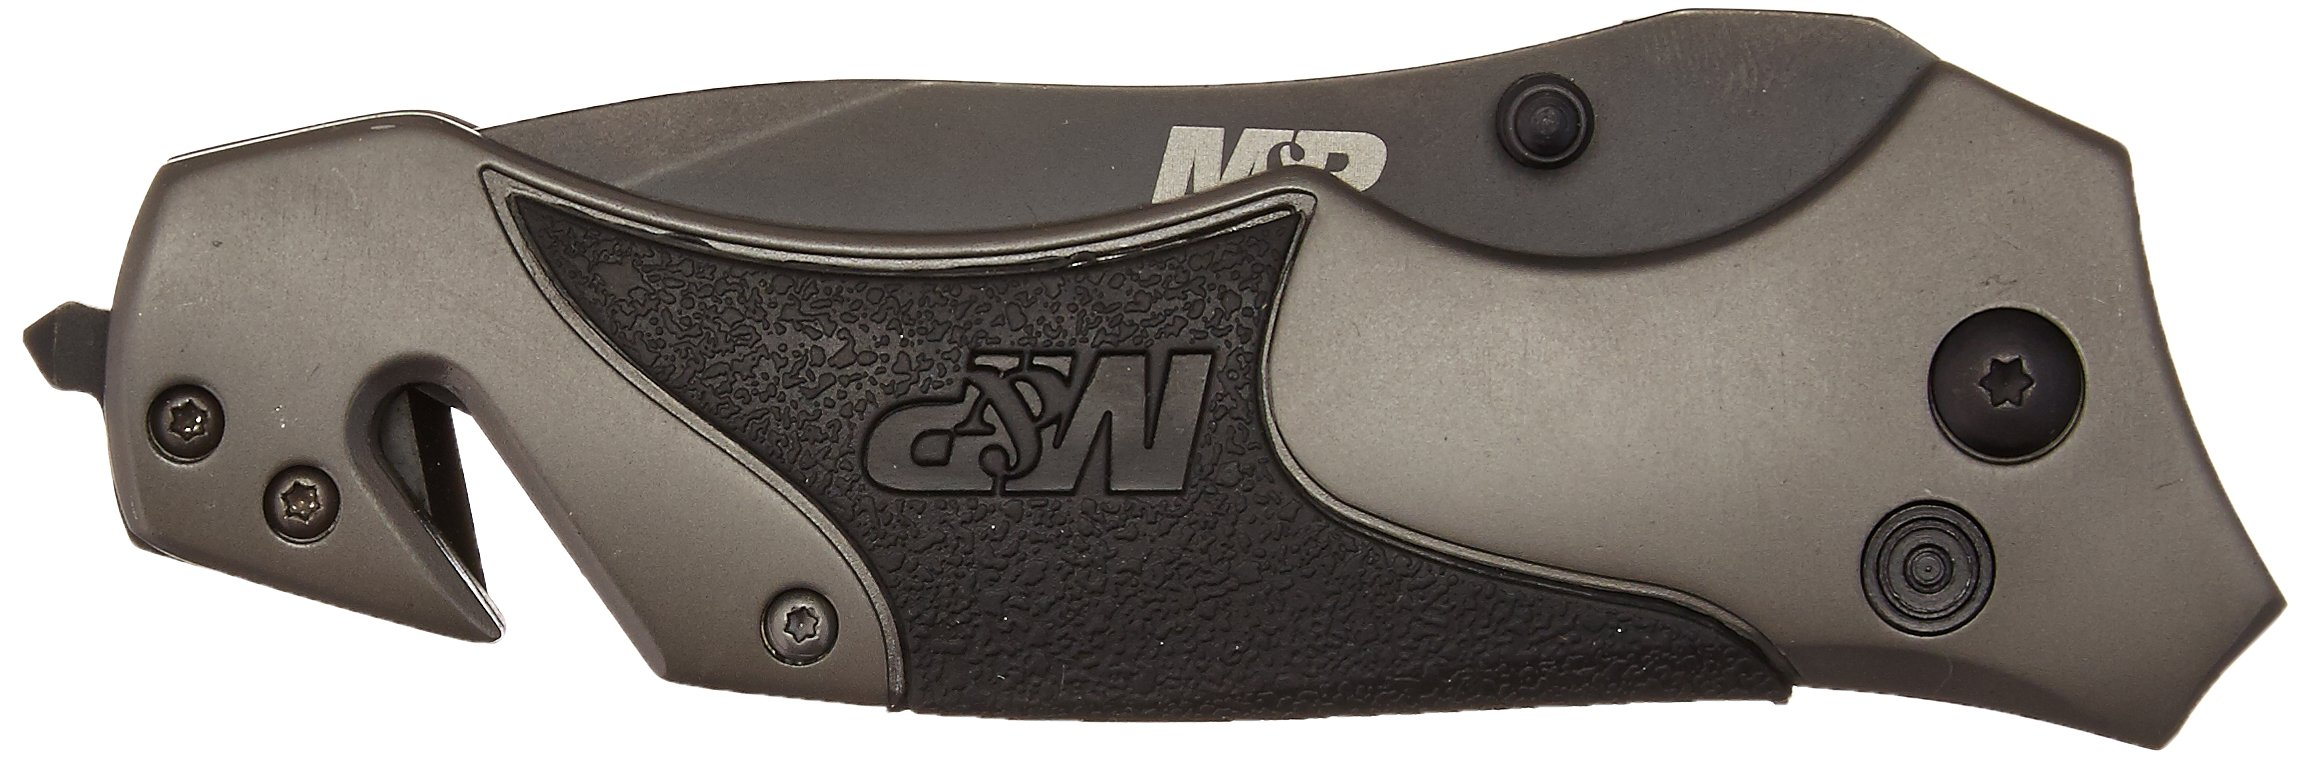 Smith & Wesson Military & Police SWMP8BS Plunge Lock Folding Knife Partially Serrated Drop Point Blade Rubber